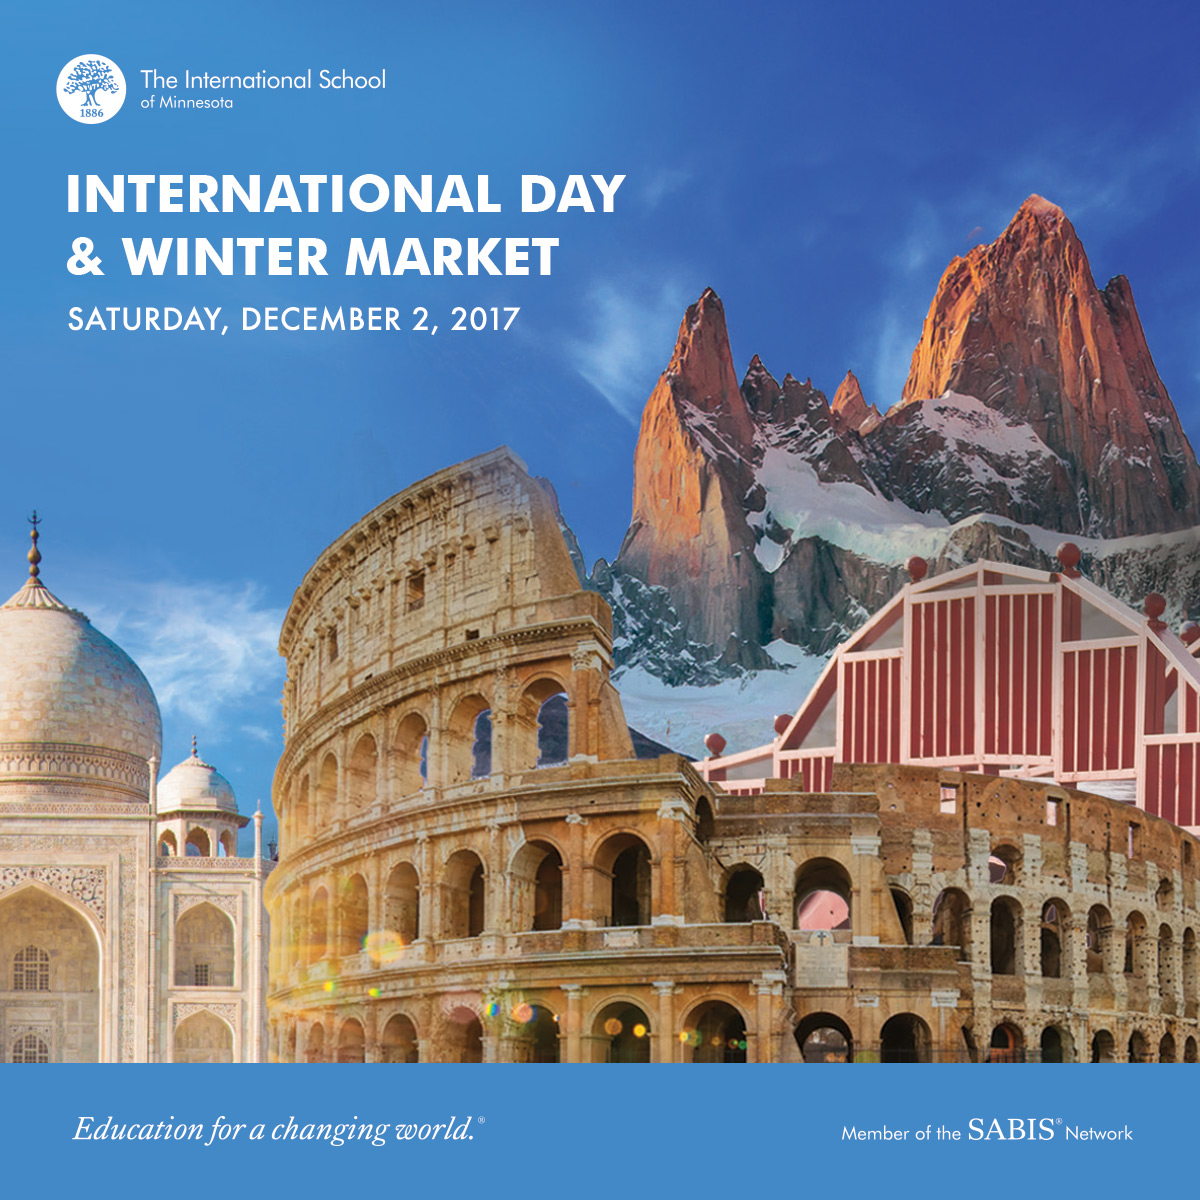 International Day & Winter Market Event 12/2/2017